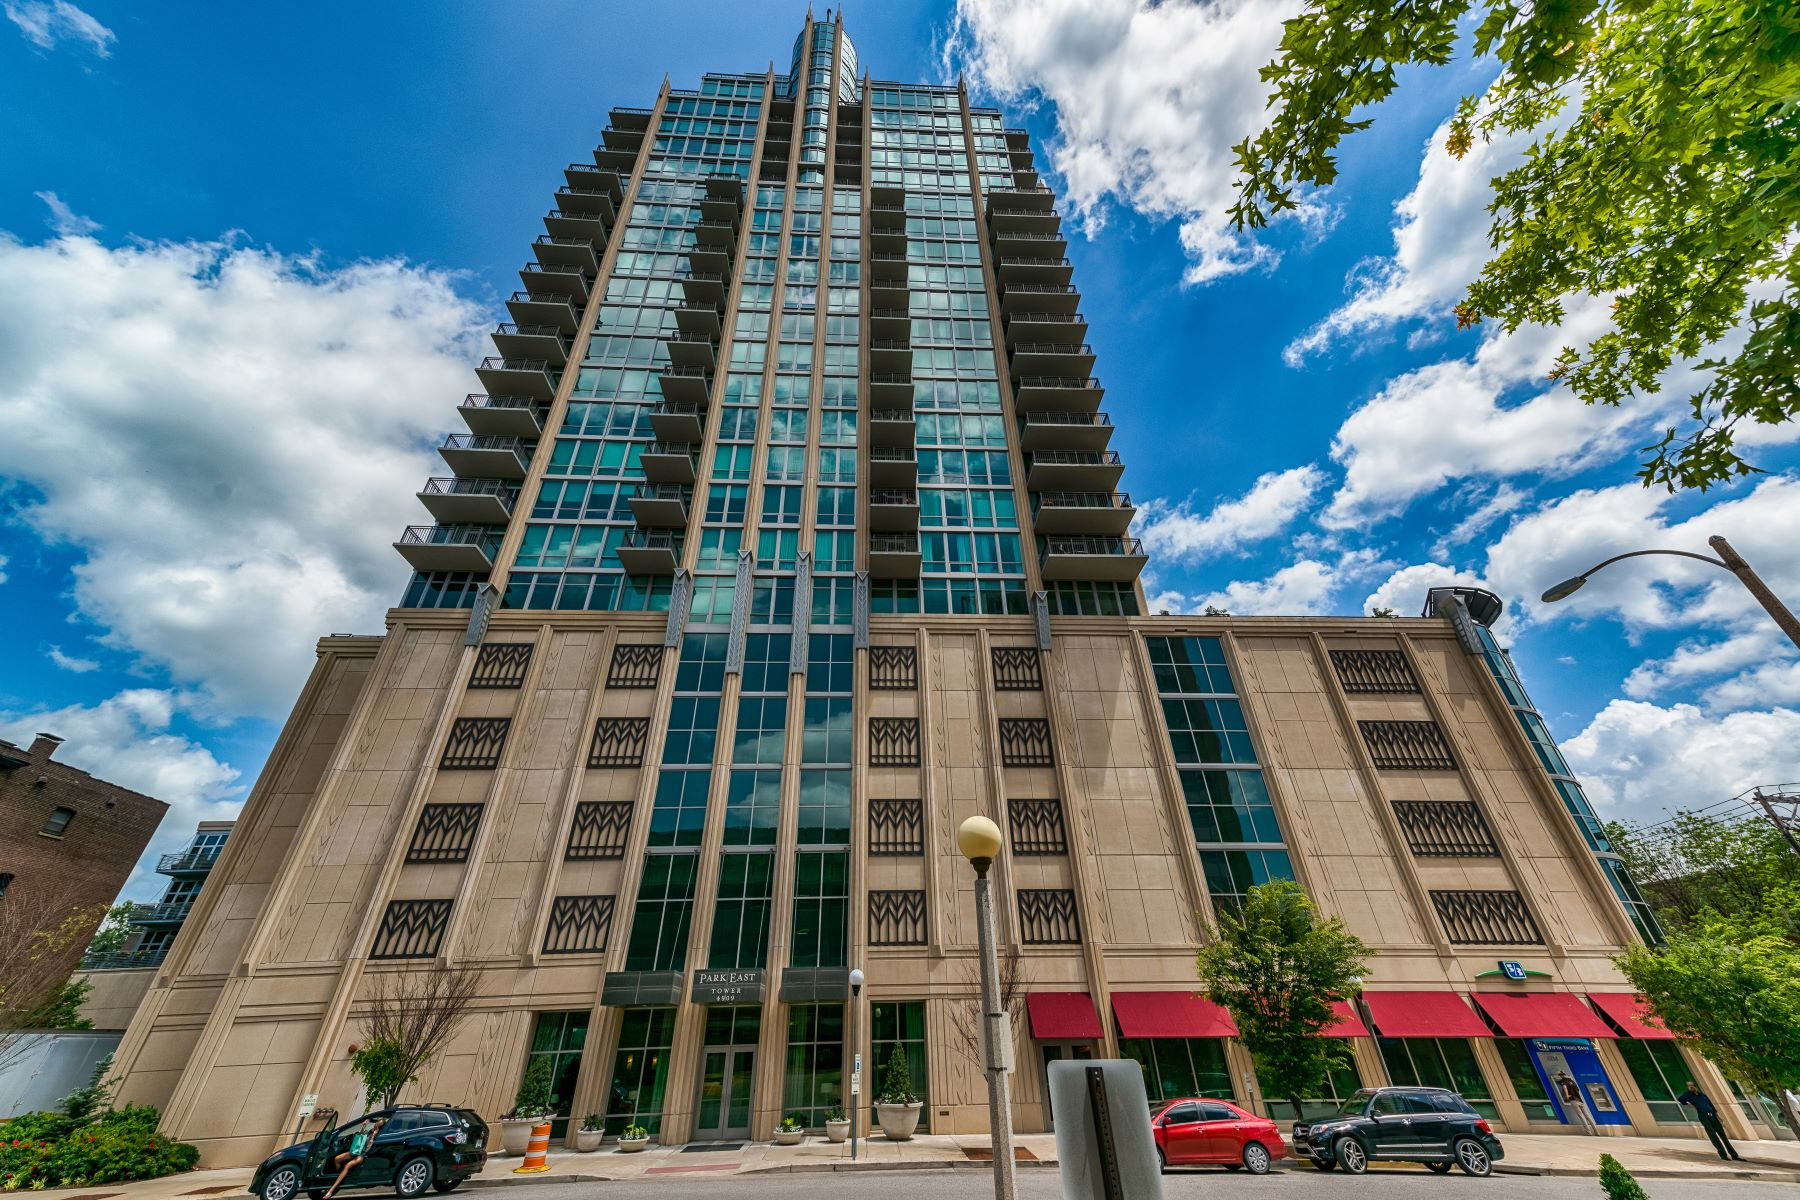 Condominiums for Sale at Park East Tower 4909 Laclede Avenue #2402 St. Louis, Missouri 63108 United States